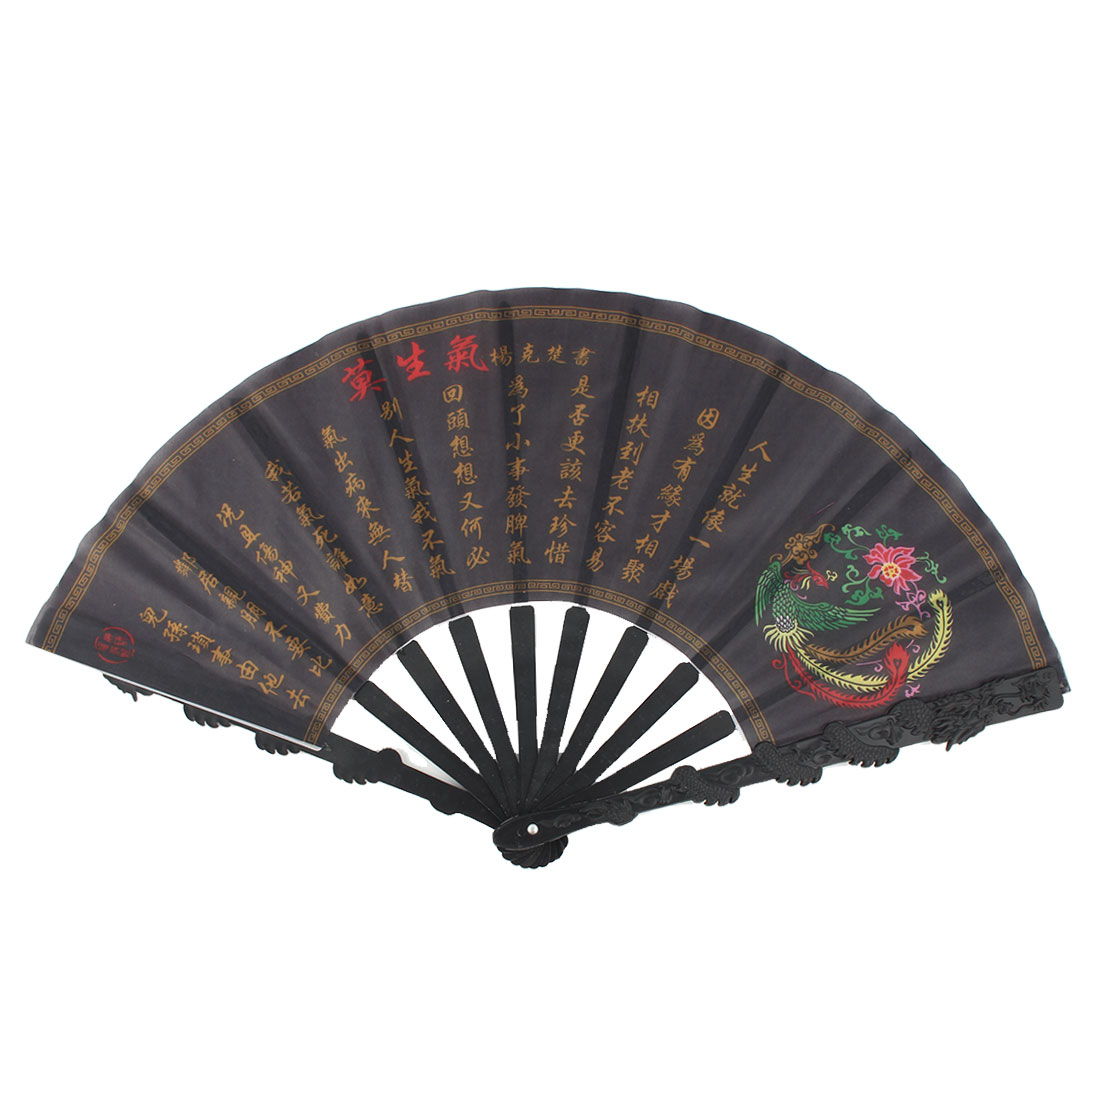 Plastic Frame Dragon Print Chinese Style Handheld Cooling Folding Fan